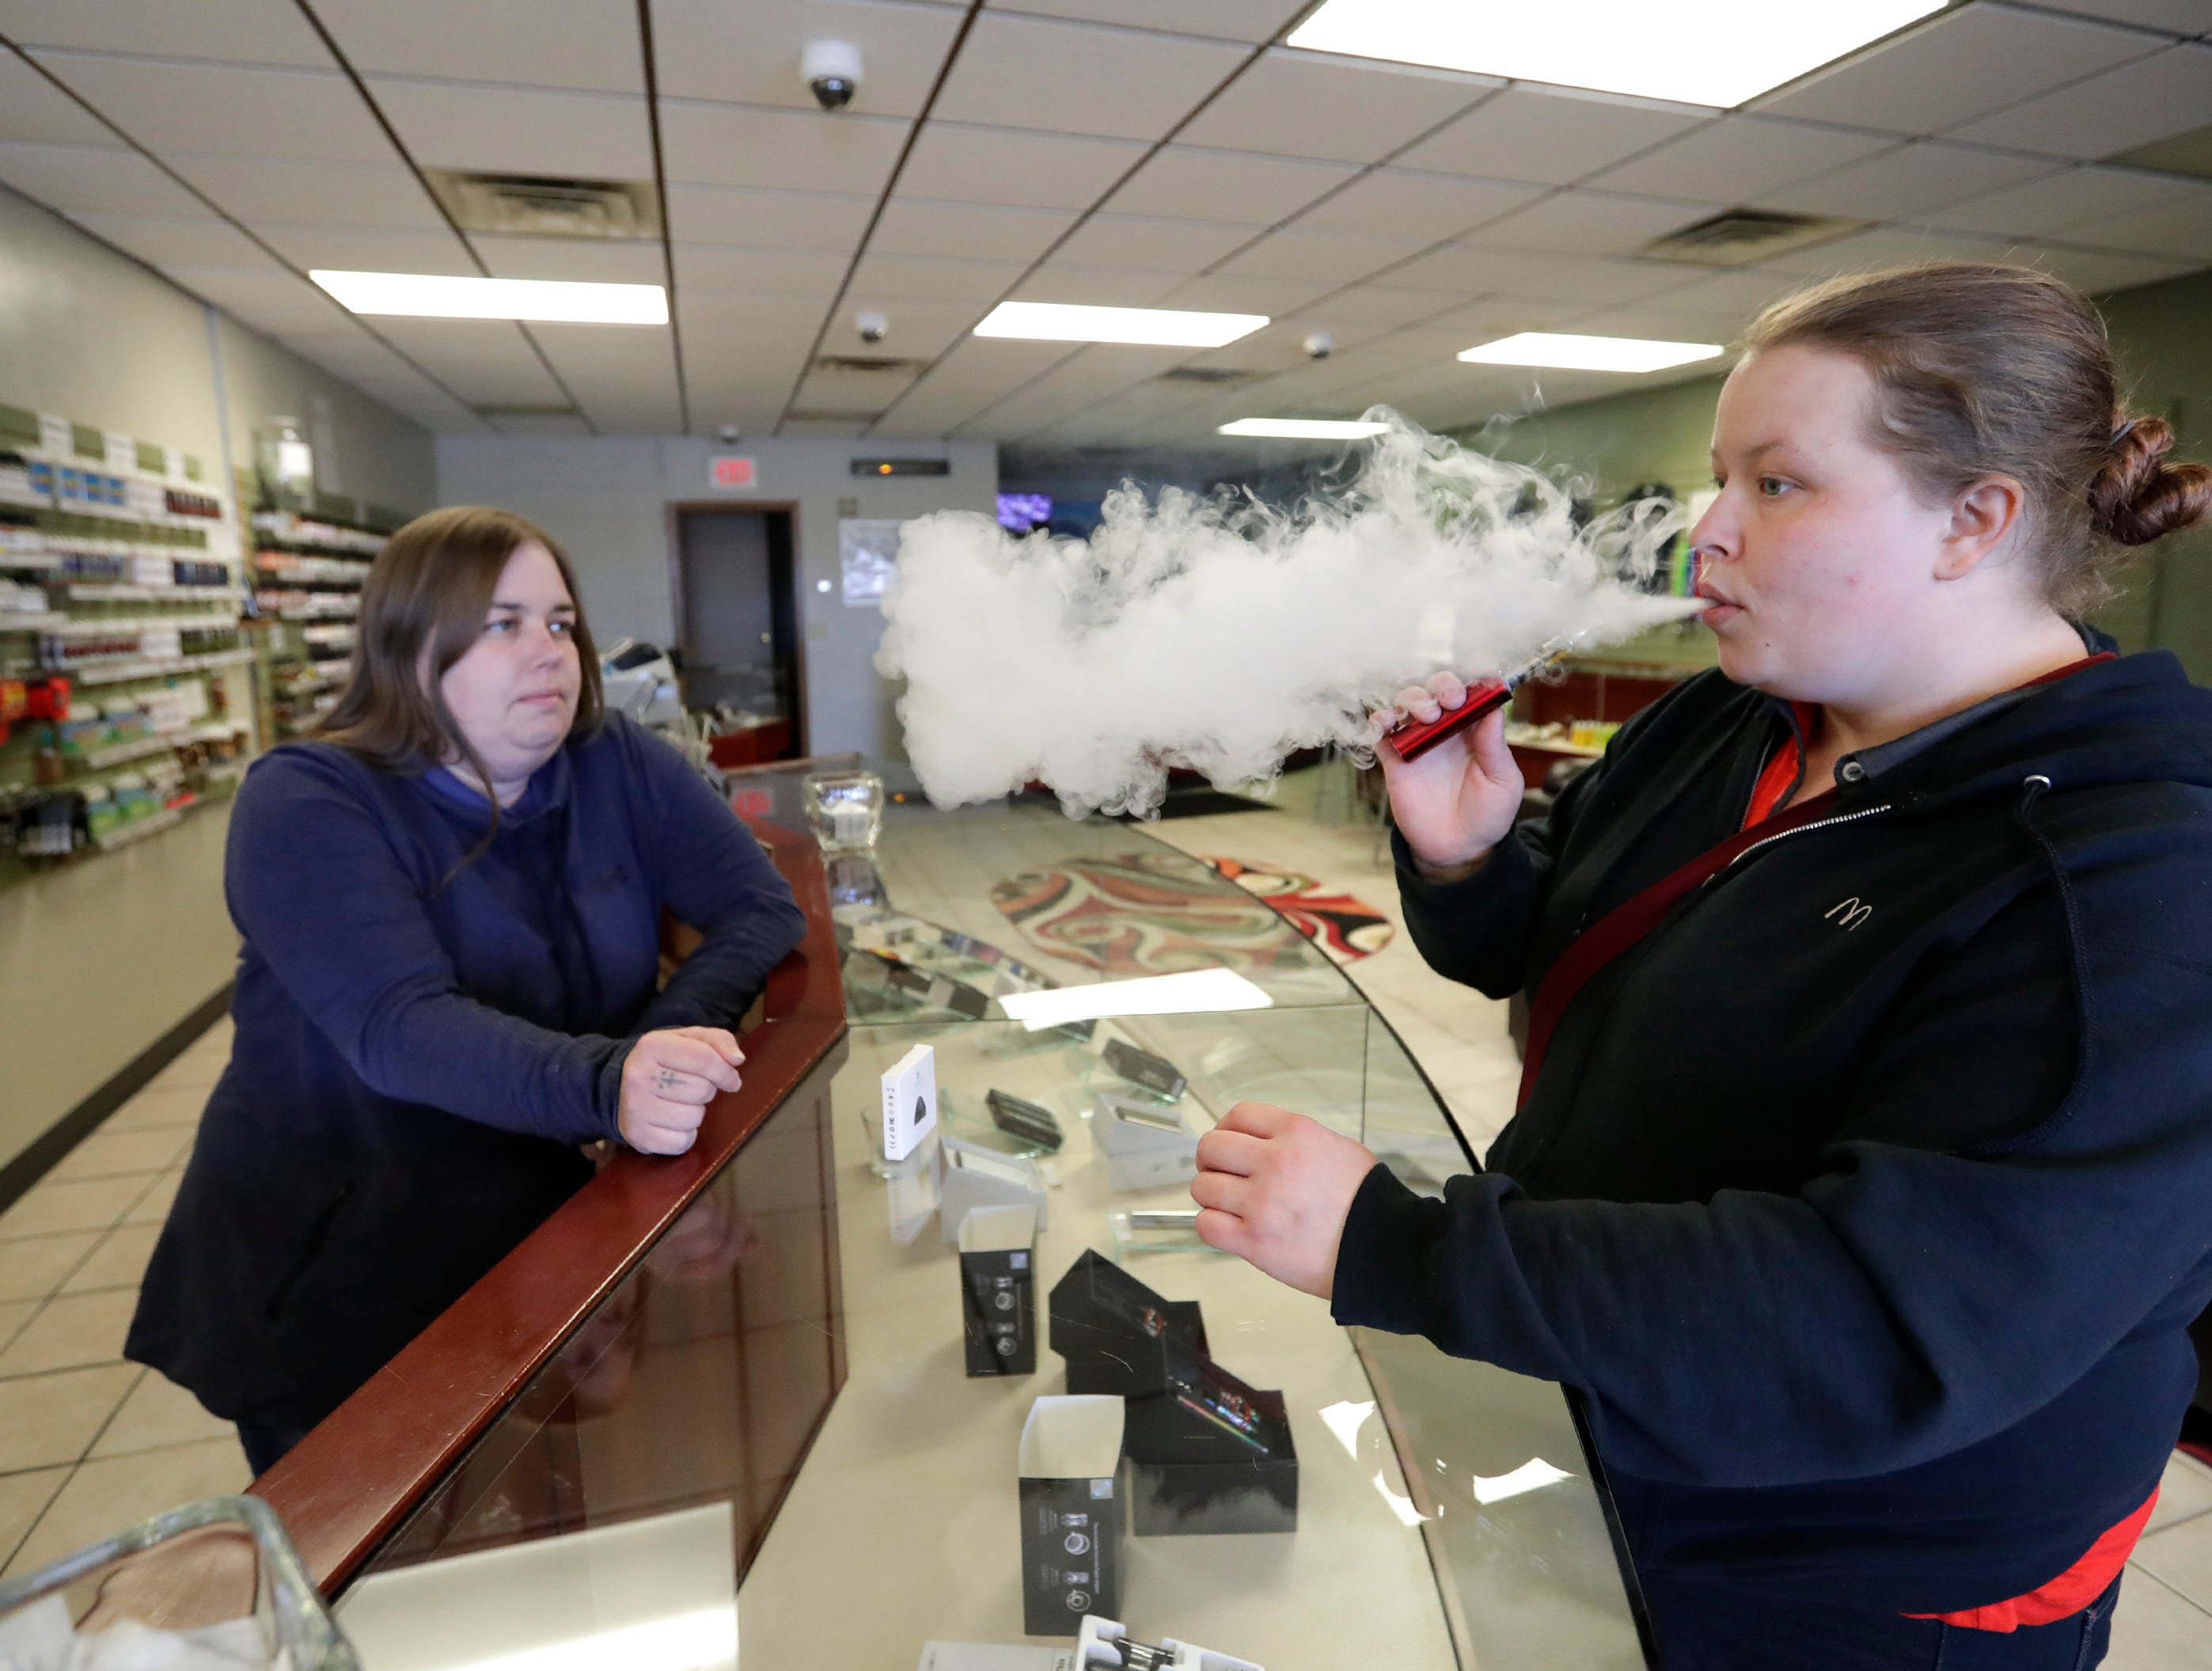 Appleton vape shop owners compromise with city officials on proposed workplace vaping ban